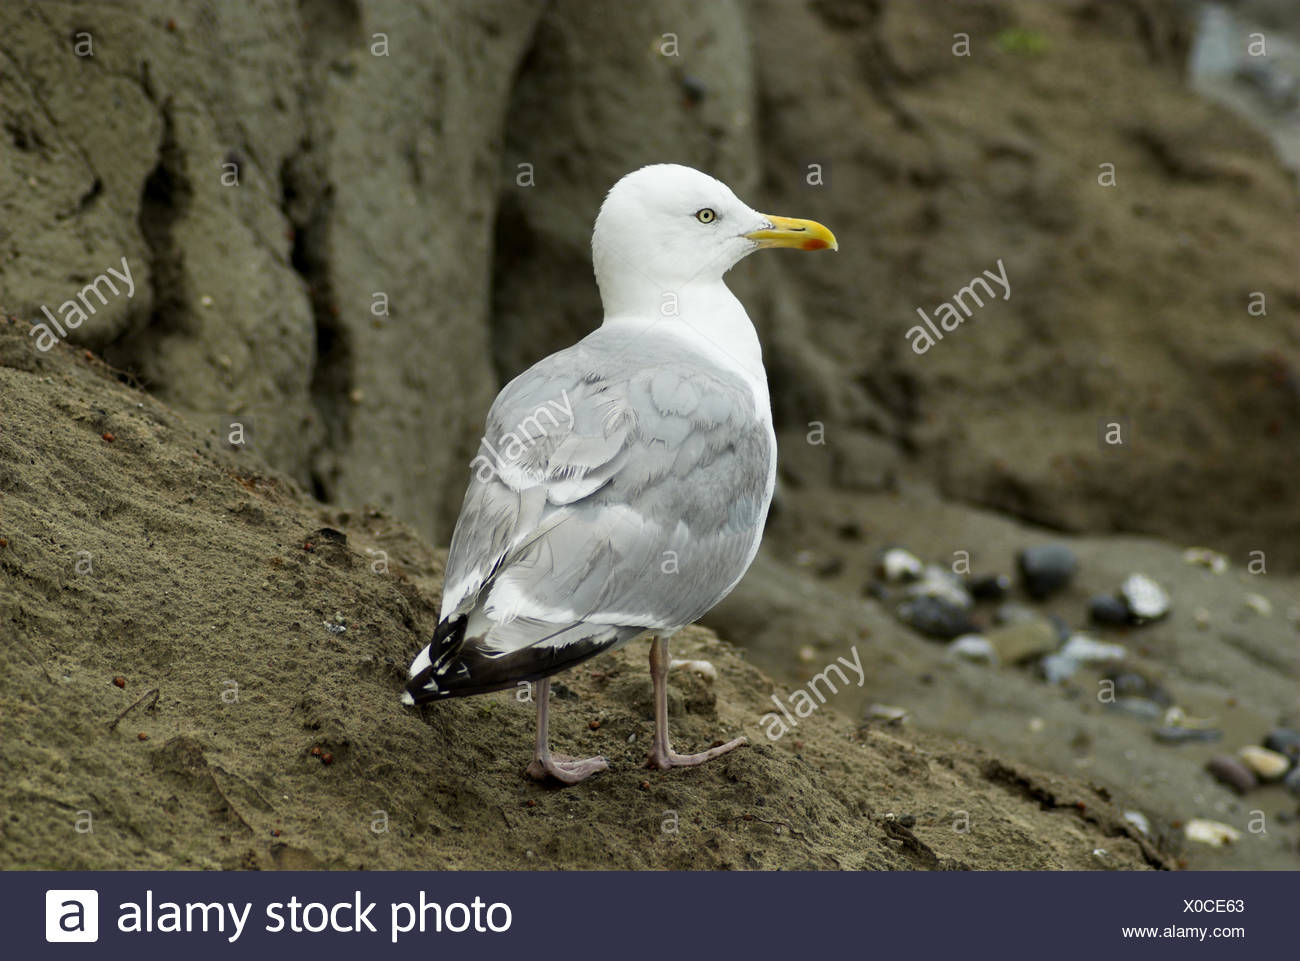 Silver gull, Larus argentatus, bird, bird's kind, the Baltic Sea, Germany, Darss, Ahrenshoop, Laridae, animal, beak, only, sea bird, fish country, Mecklenburg-West Pomerania, gull, whole body, - Stock Image